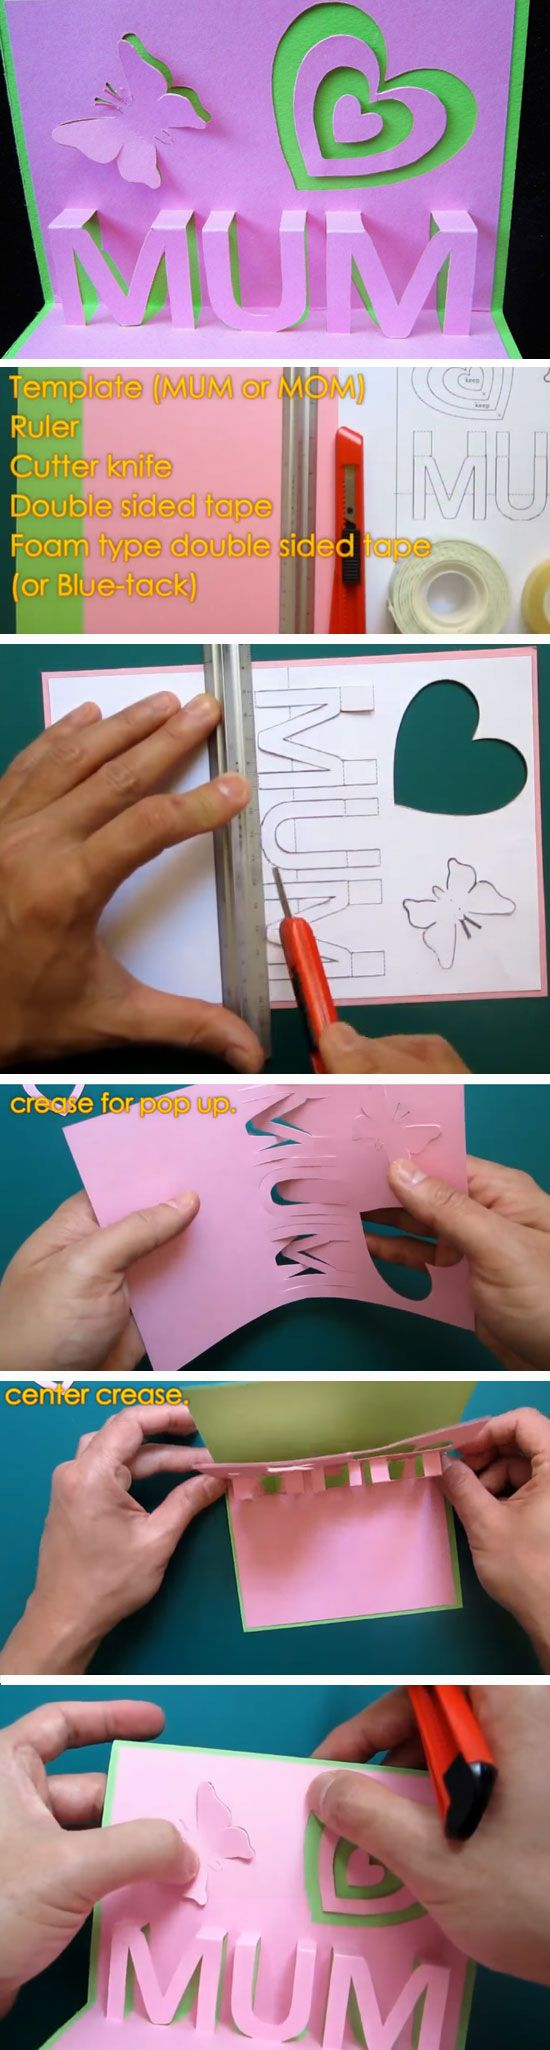 15 Diy Mothers Day Card Ideas For Children Mothers Day Mother S